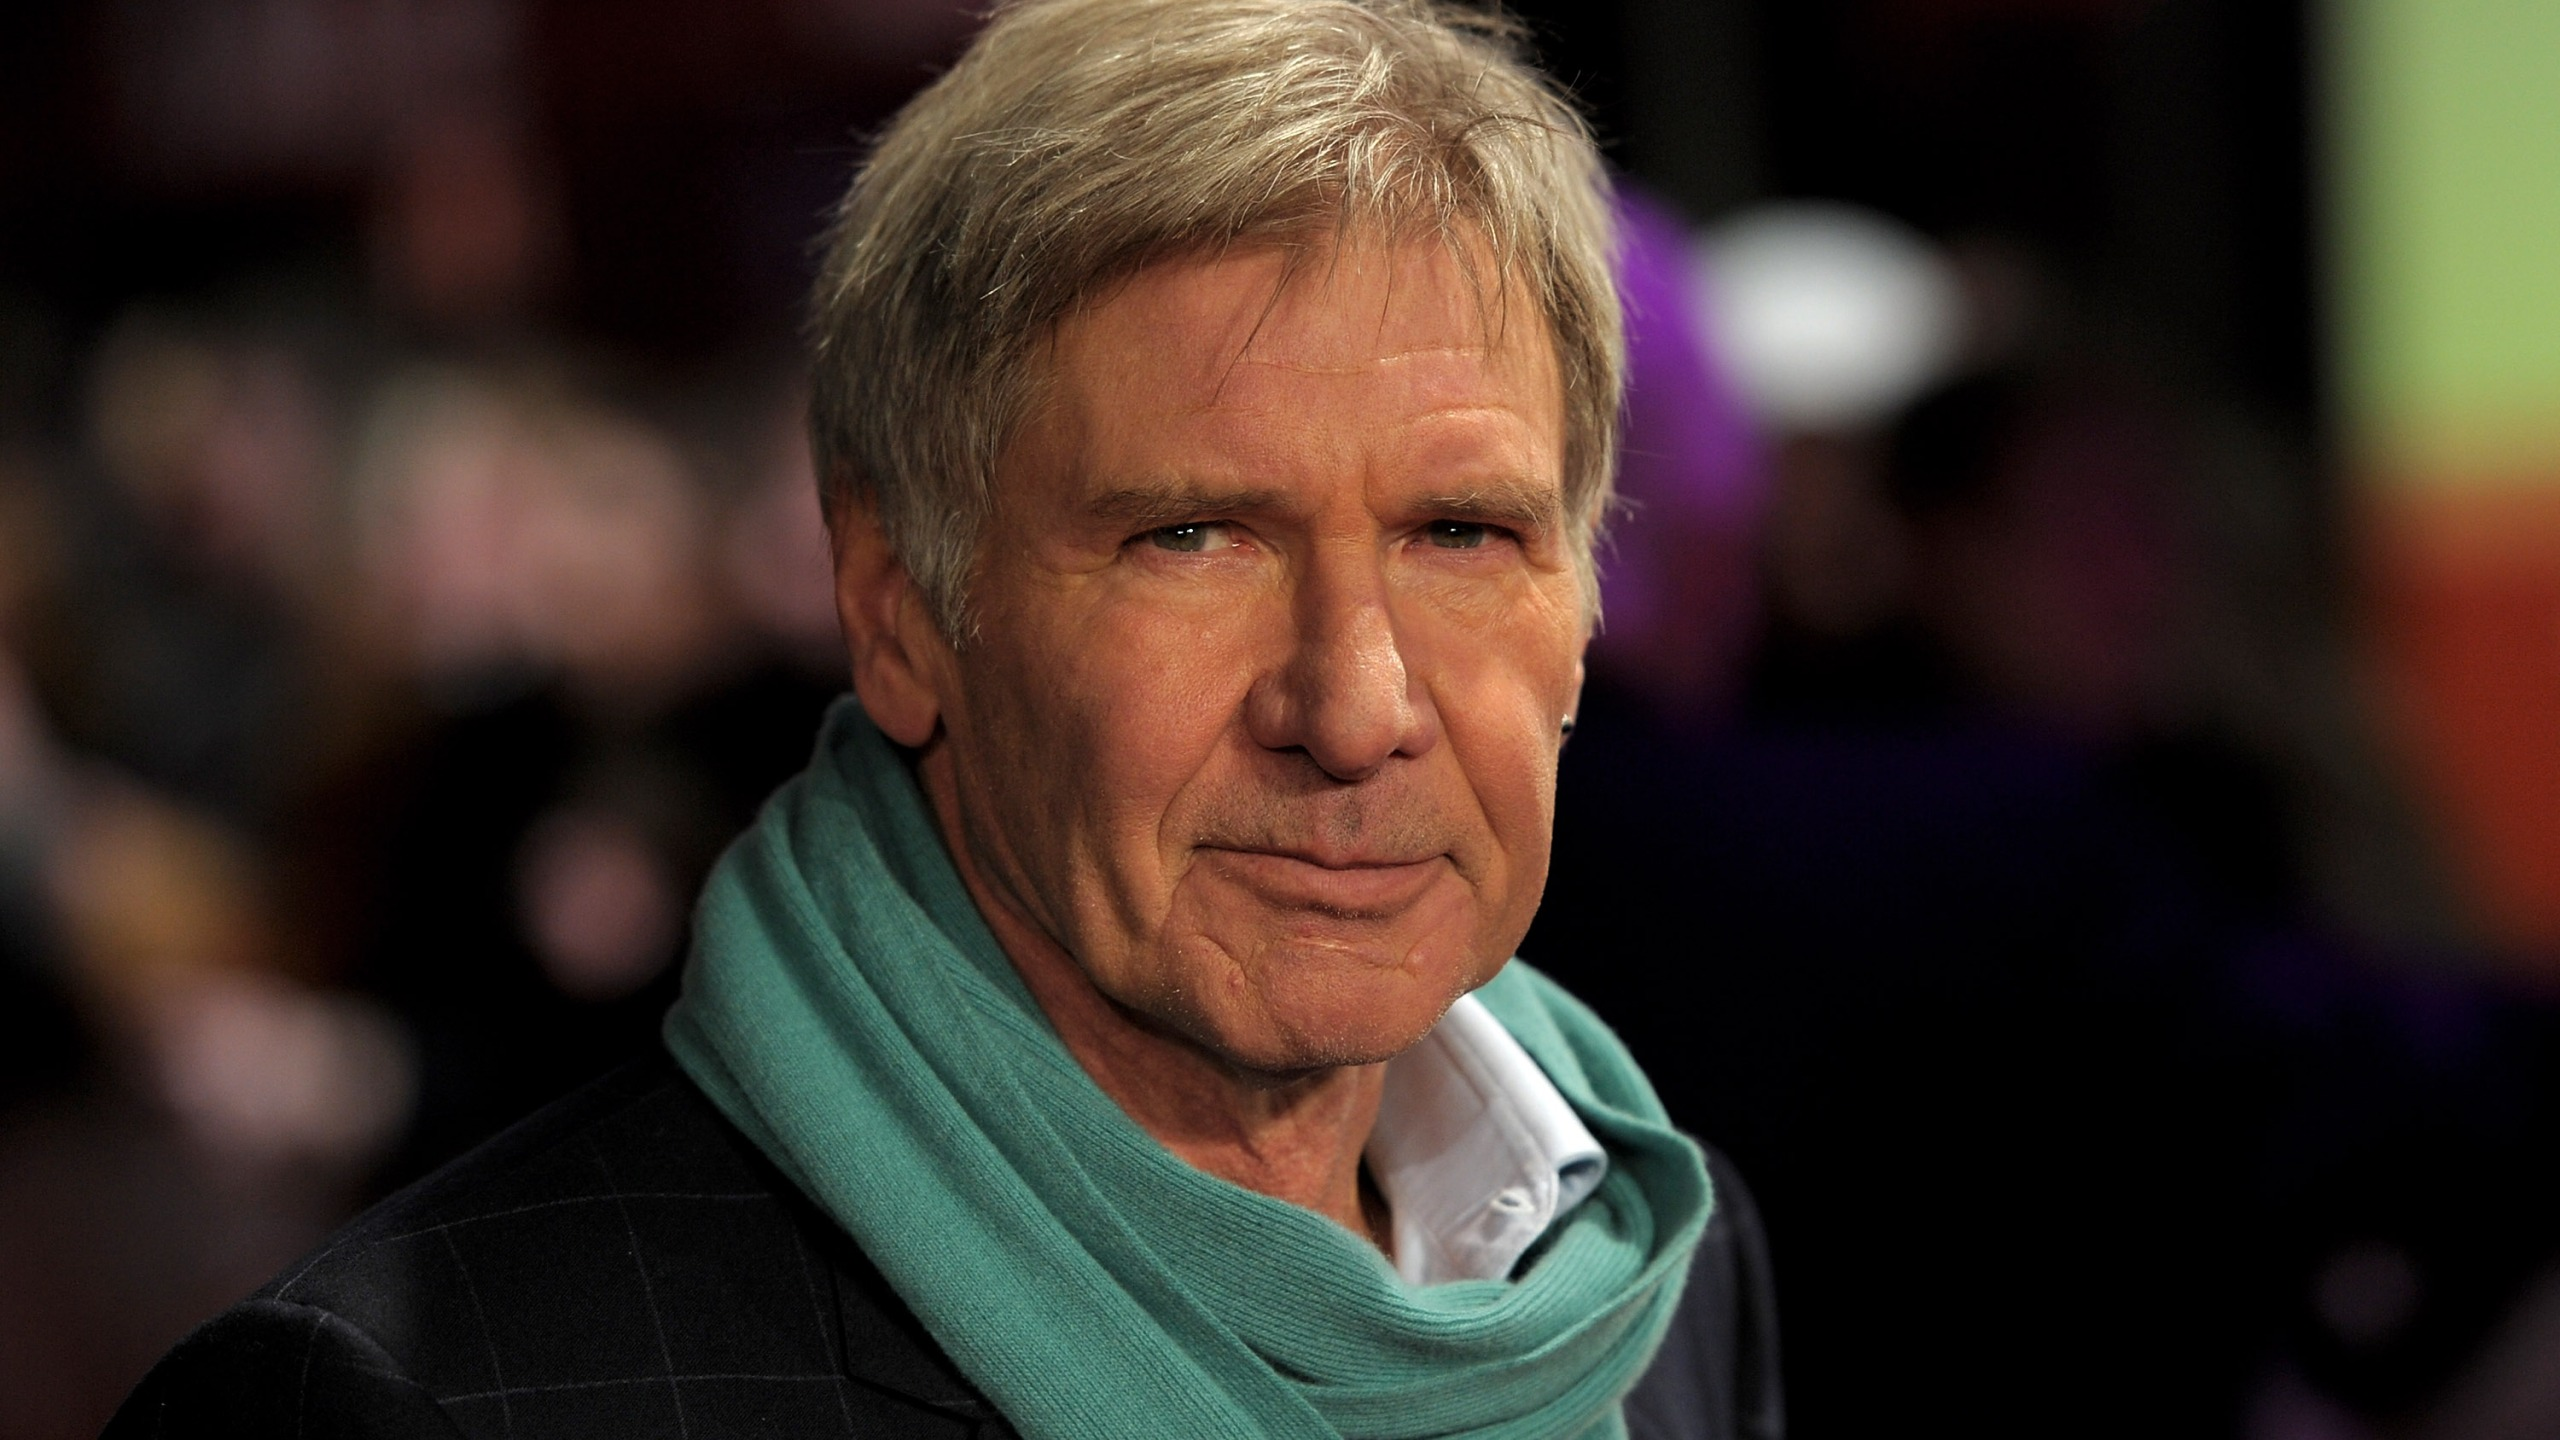 Actor Harrison Ford attends the 'Morning Glory' UK premiere at the Empire Leicester Square on January 11, 2011 in London, England. (Ian Gavan/Getty Images)